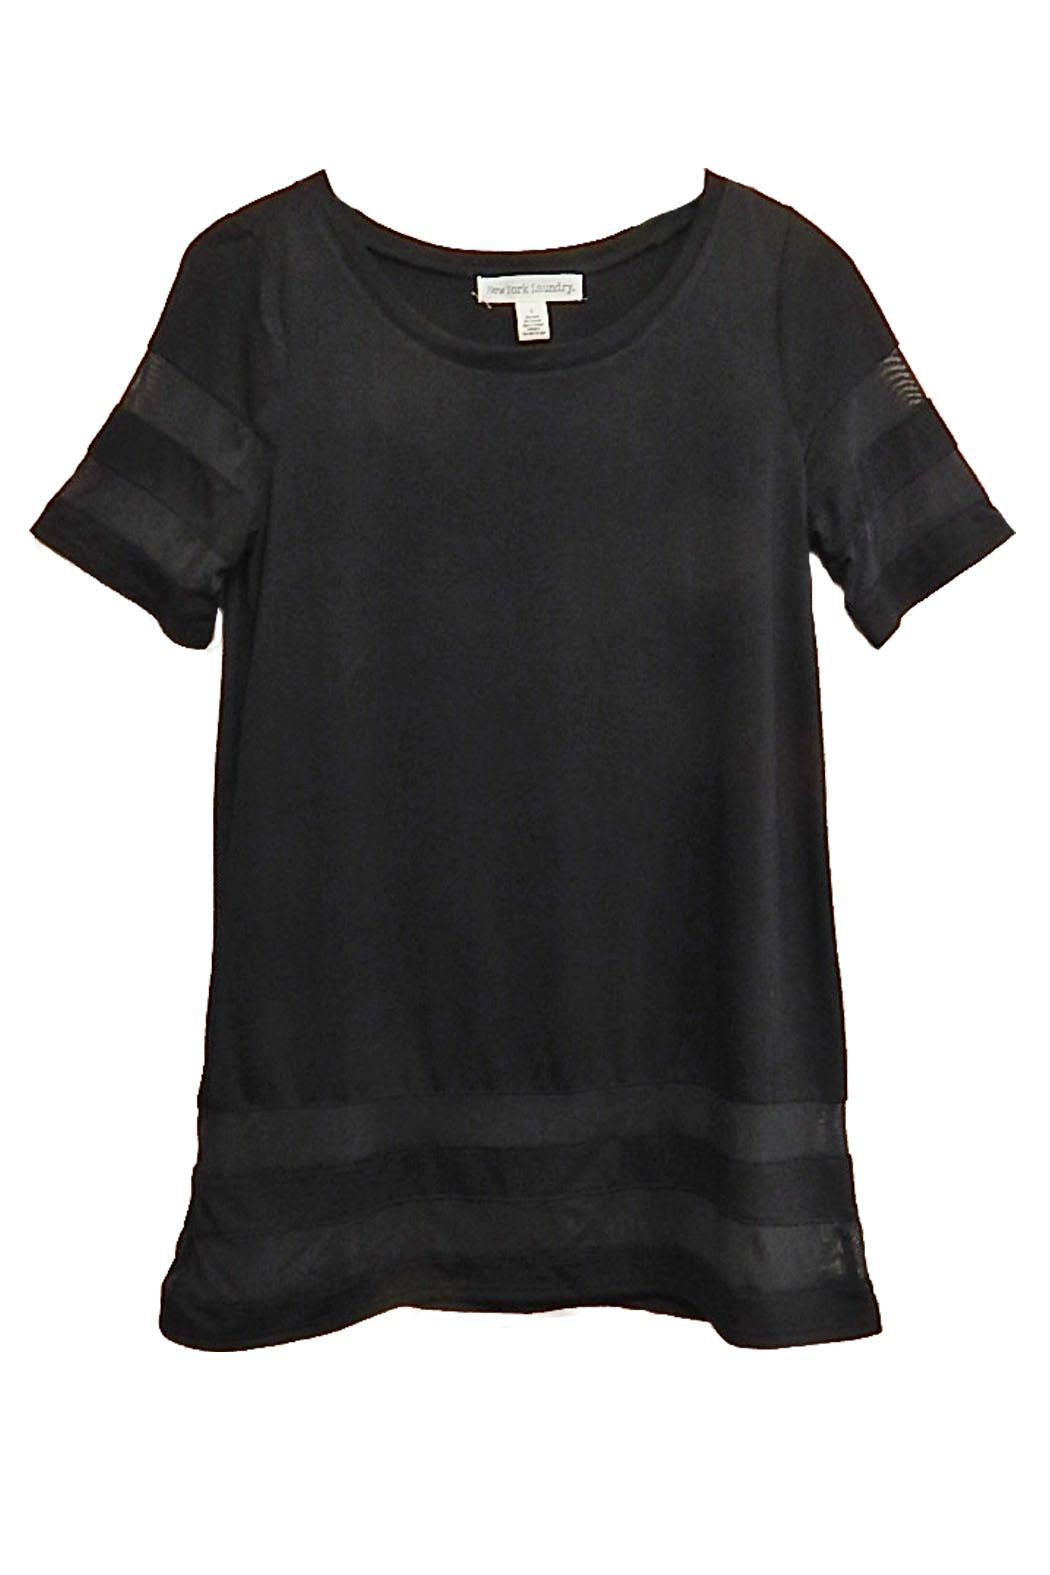 New York Laundry Black Sheer-Trim Top - Front Cropped Image